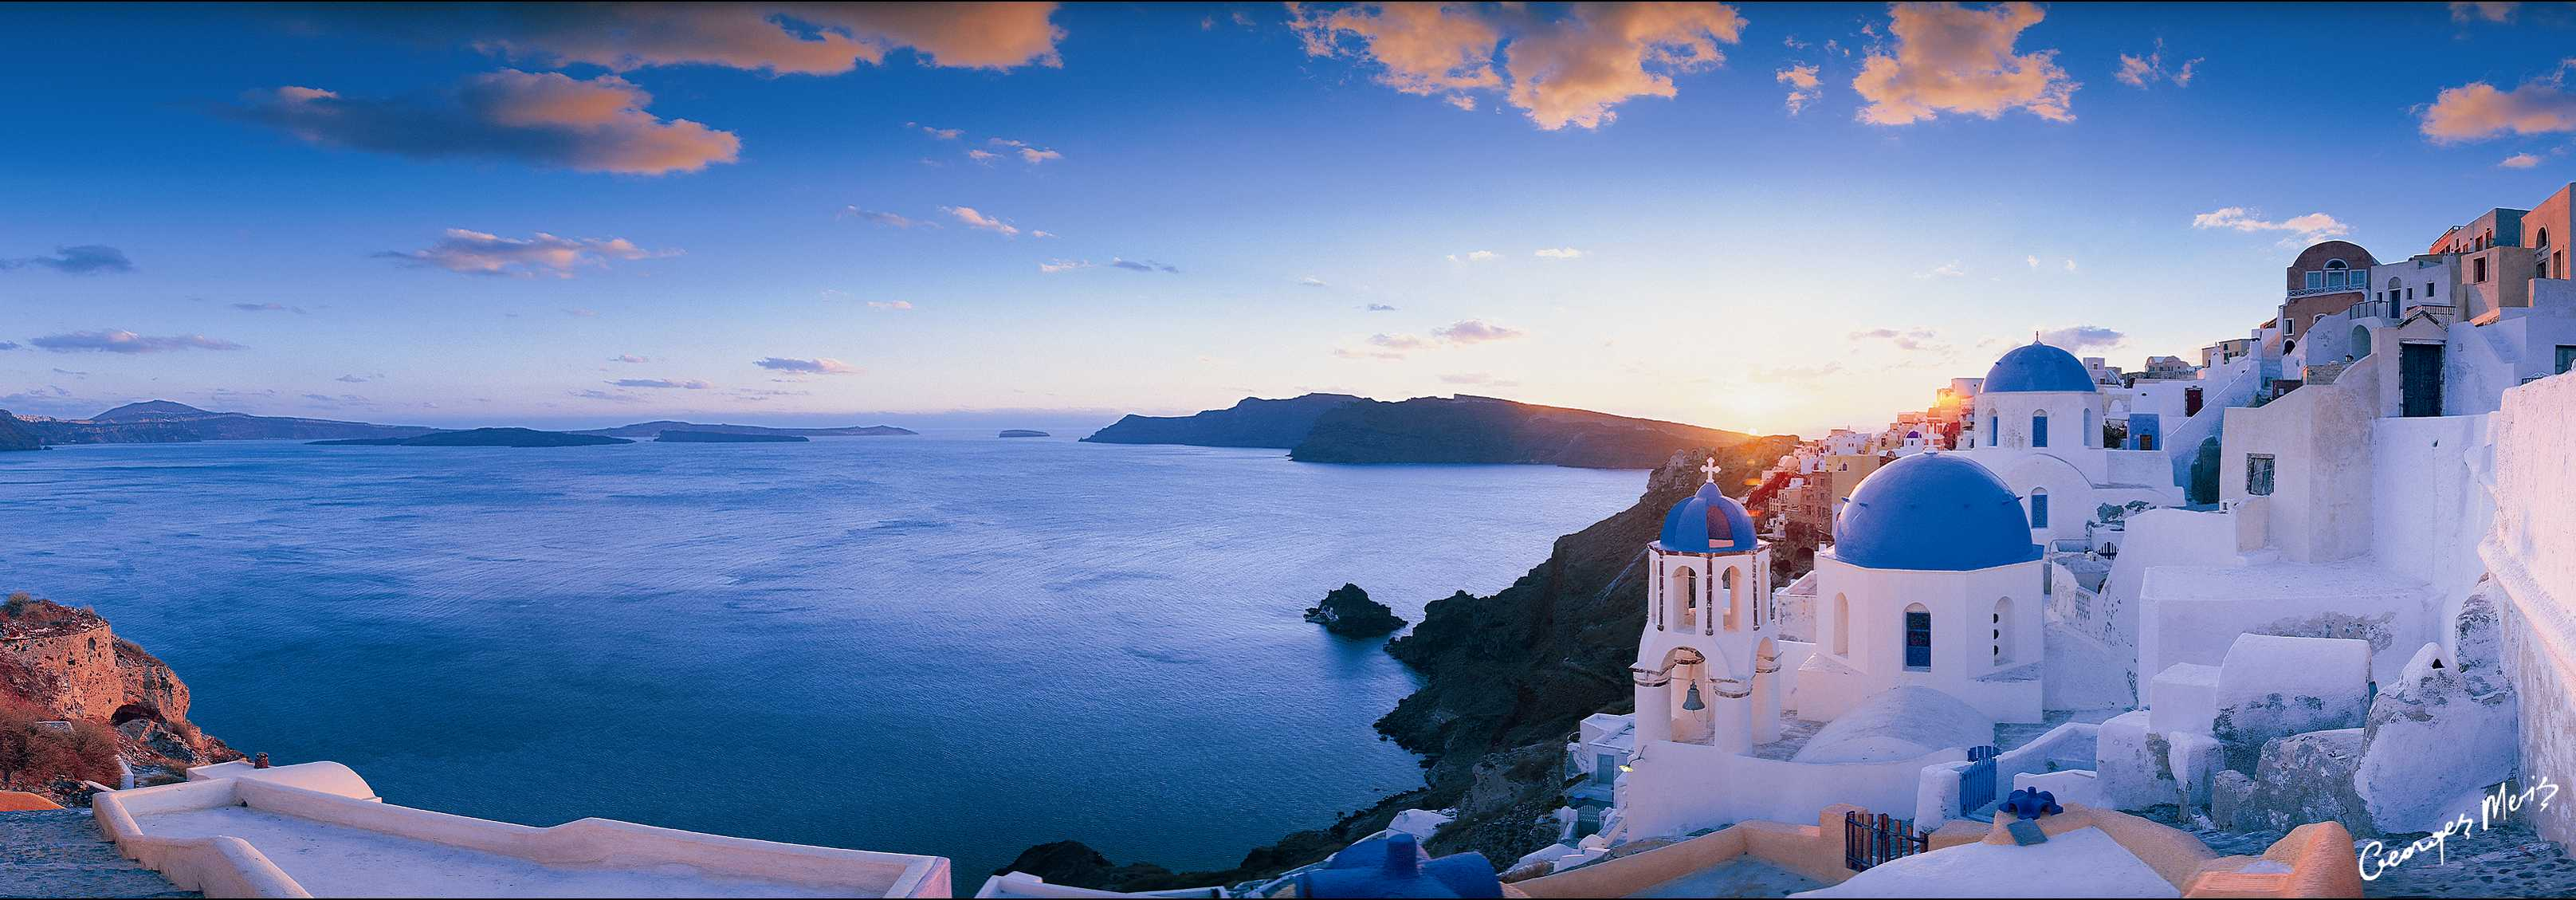 57] Santorini Wallpaper on WallpaperSafari 3232x1129